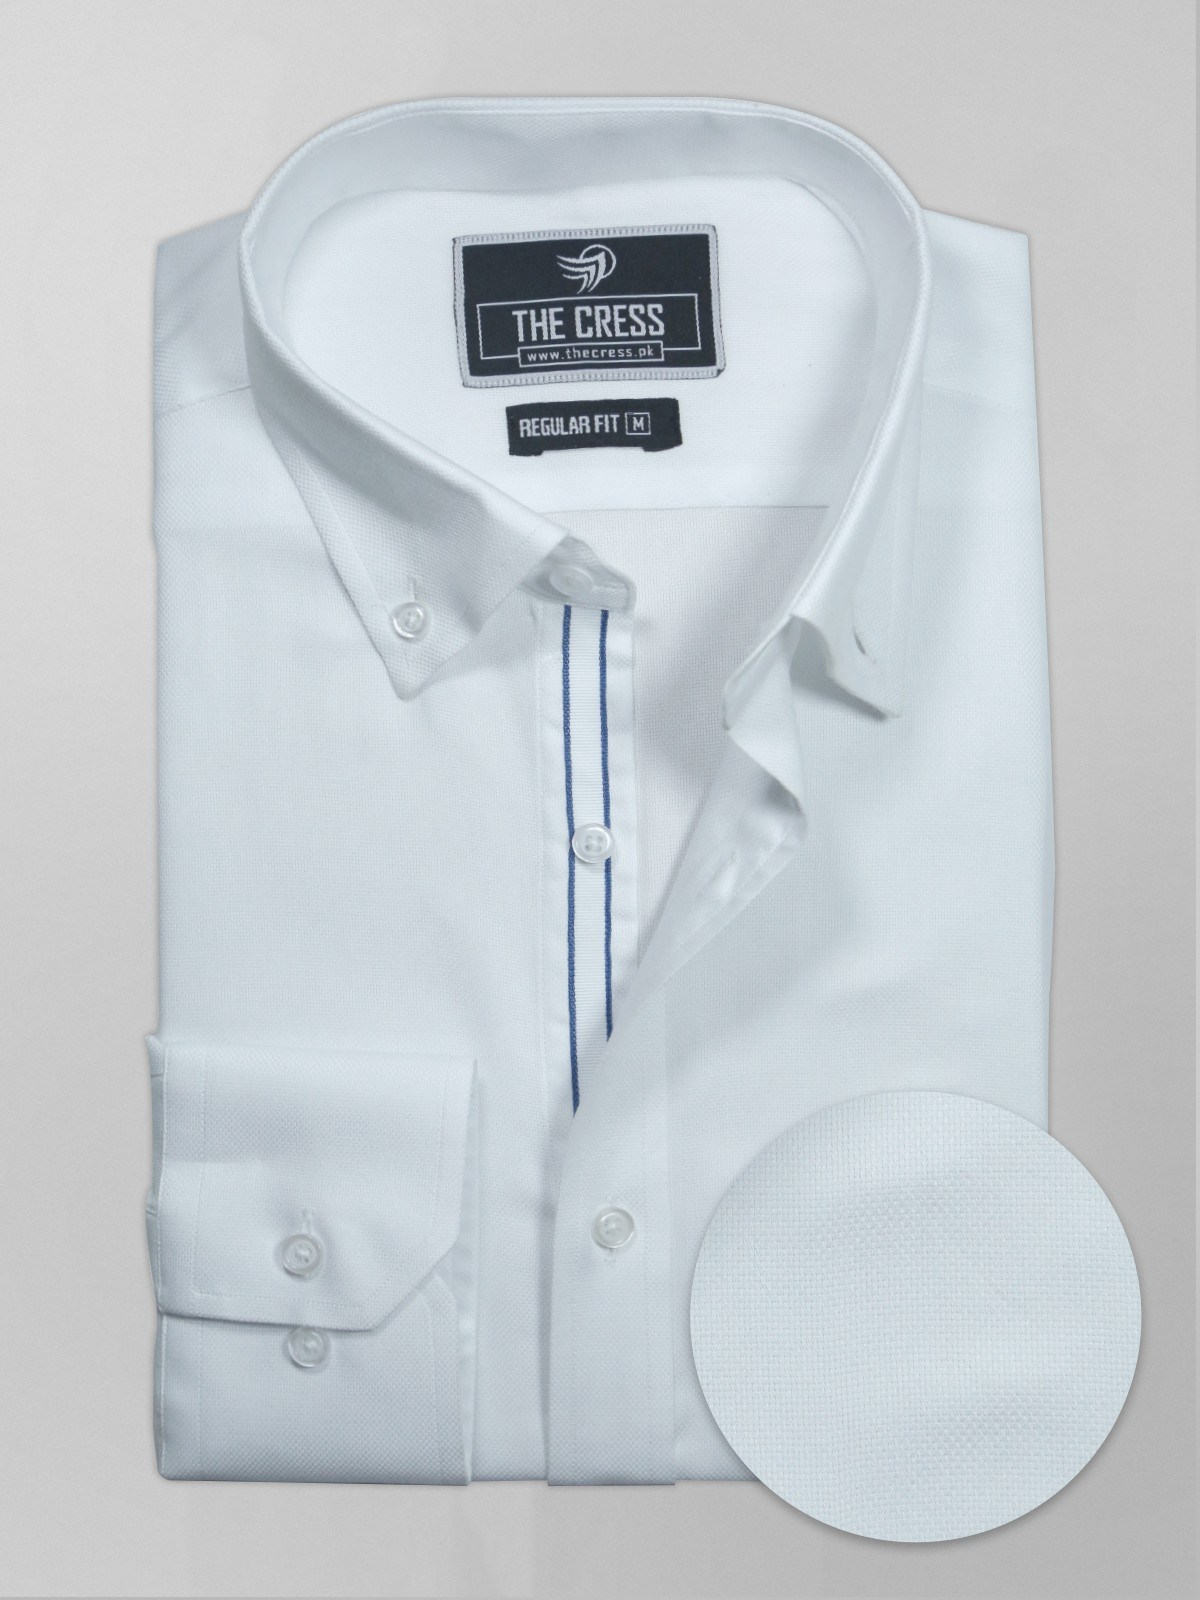 white formal shirt with button down collar